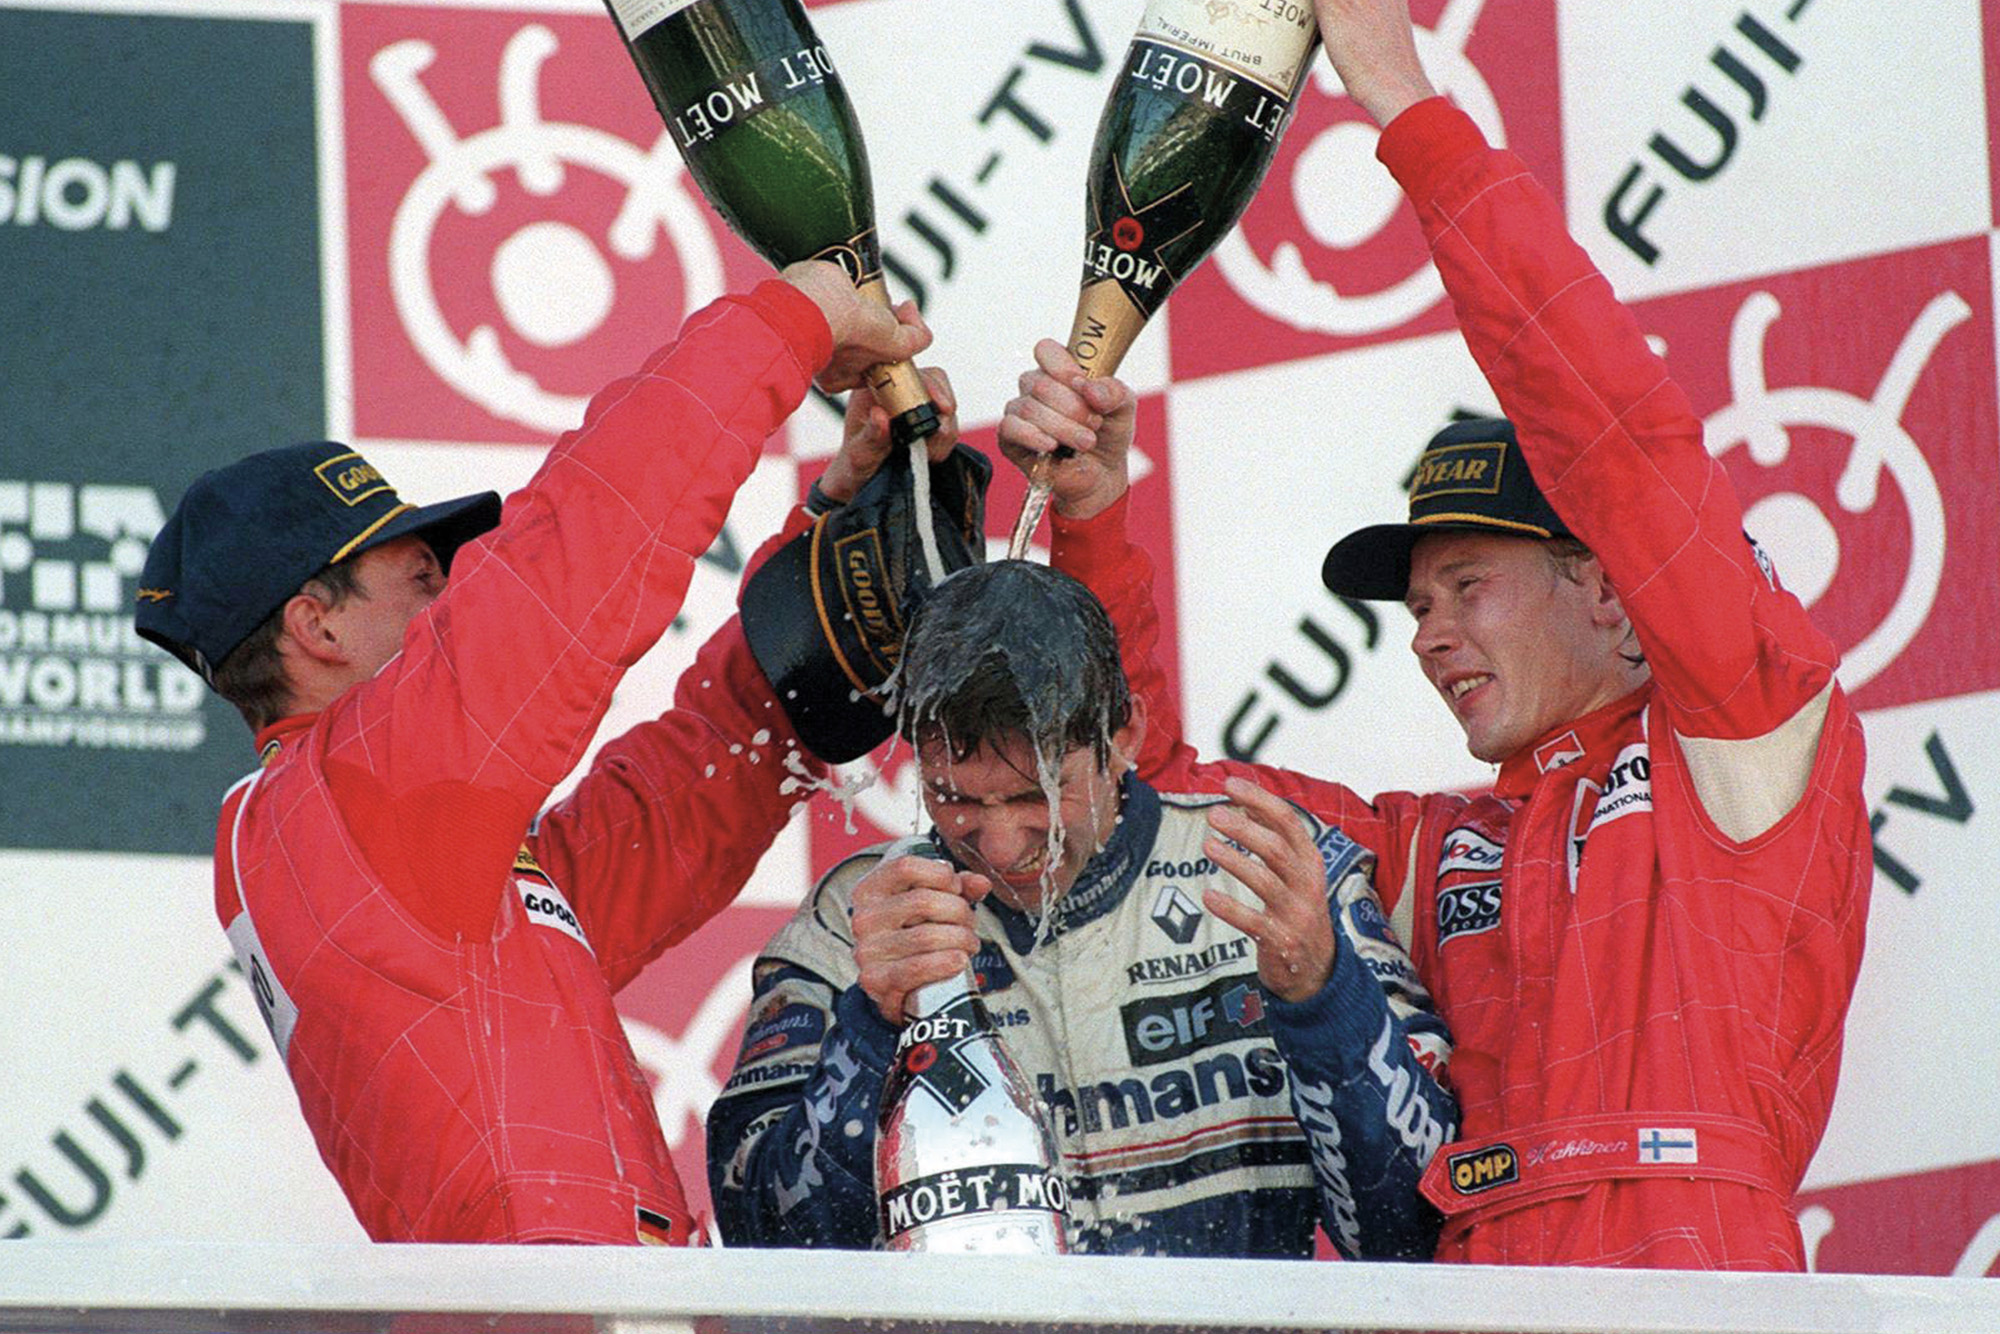 Damon Hill drenched in champagne by Michael Schumacher and Mika Hakkinen after winning the 1996 F1 championship